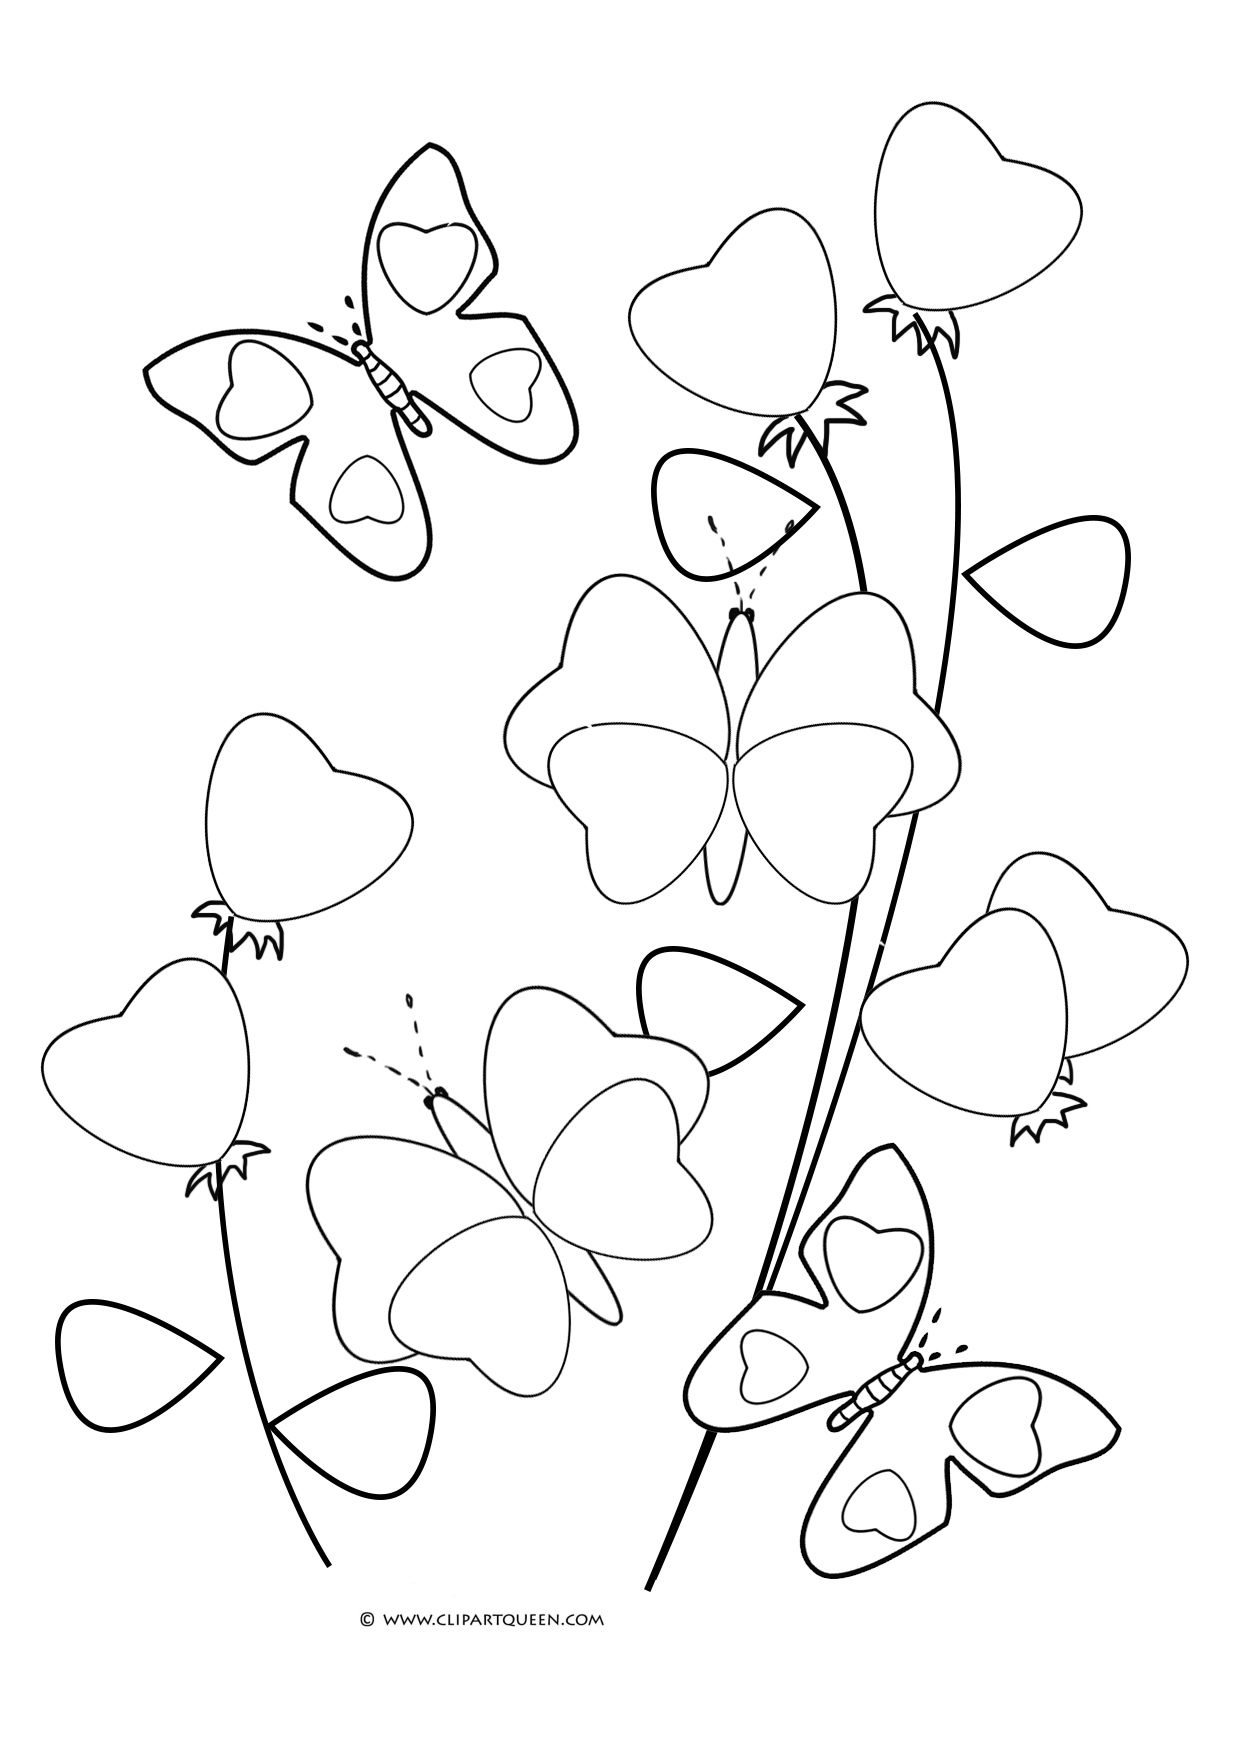 blue glitter wallpaper 0 additionally  further  together with coloring page butterflies and hearts besides brazil flag as well  also  additionally banana 25339 960 720 likewise  additionally  as well . on free printable flower coloring pages funny